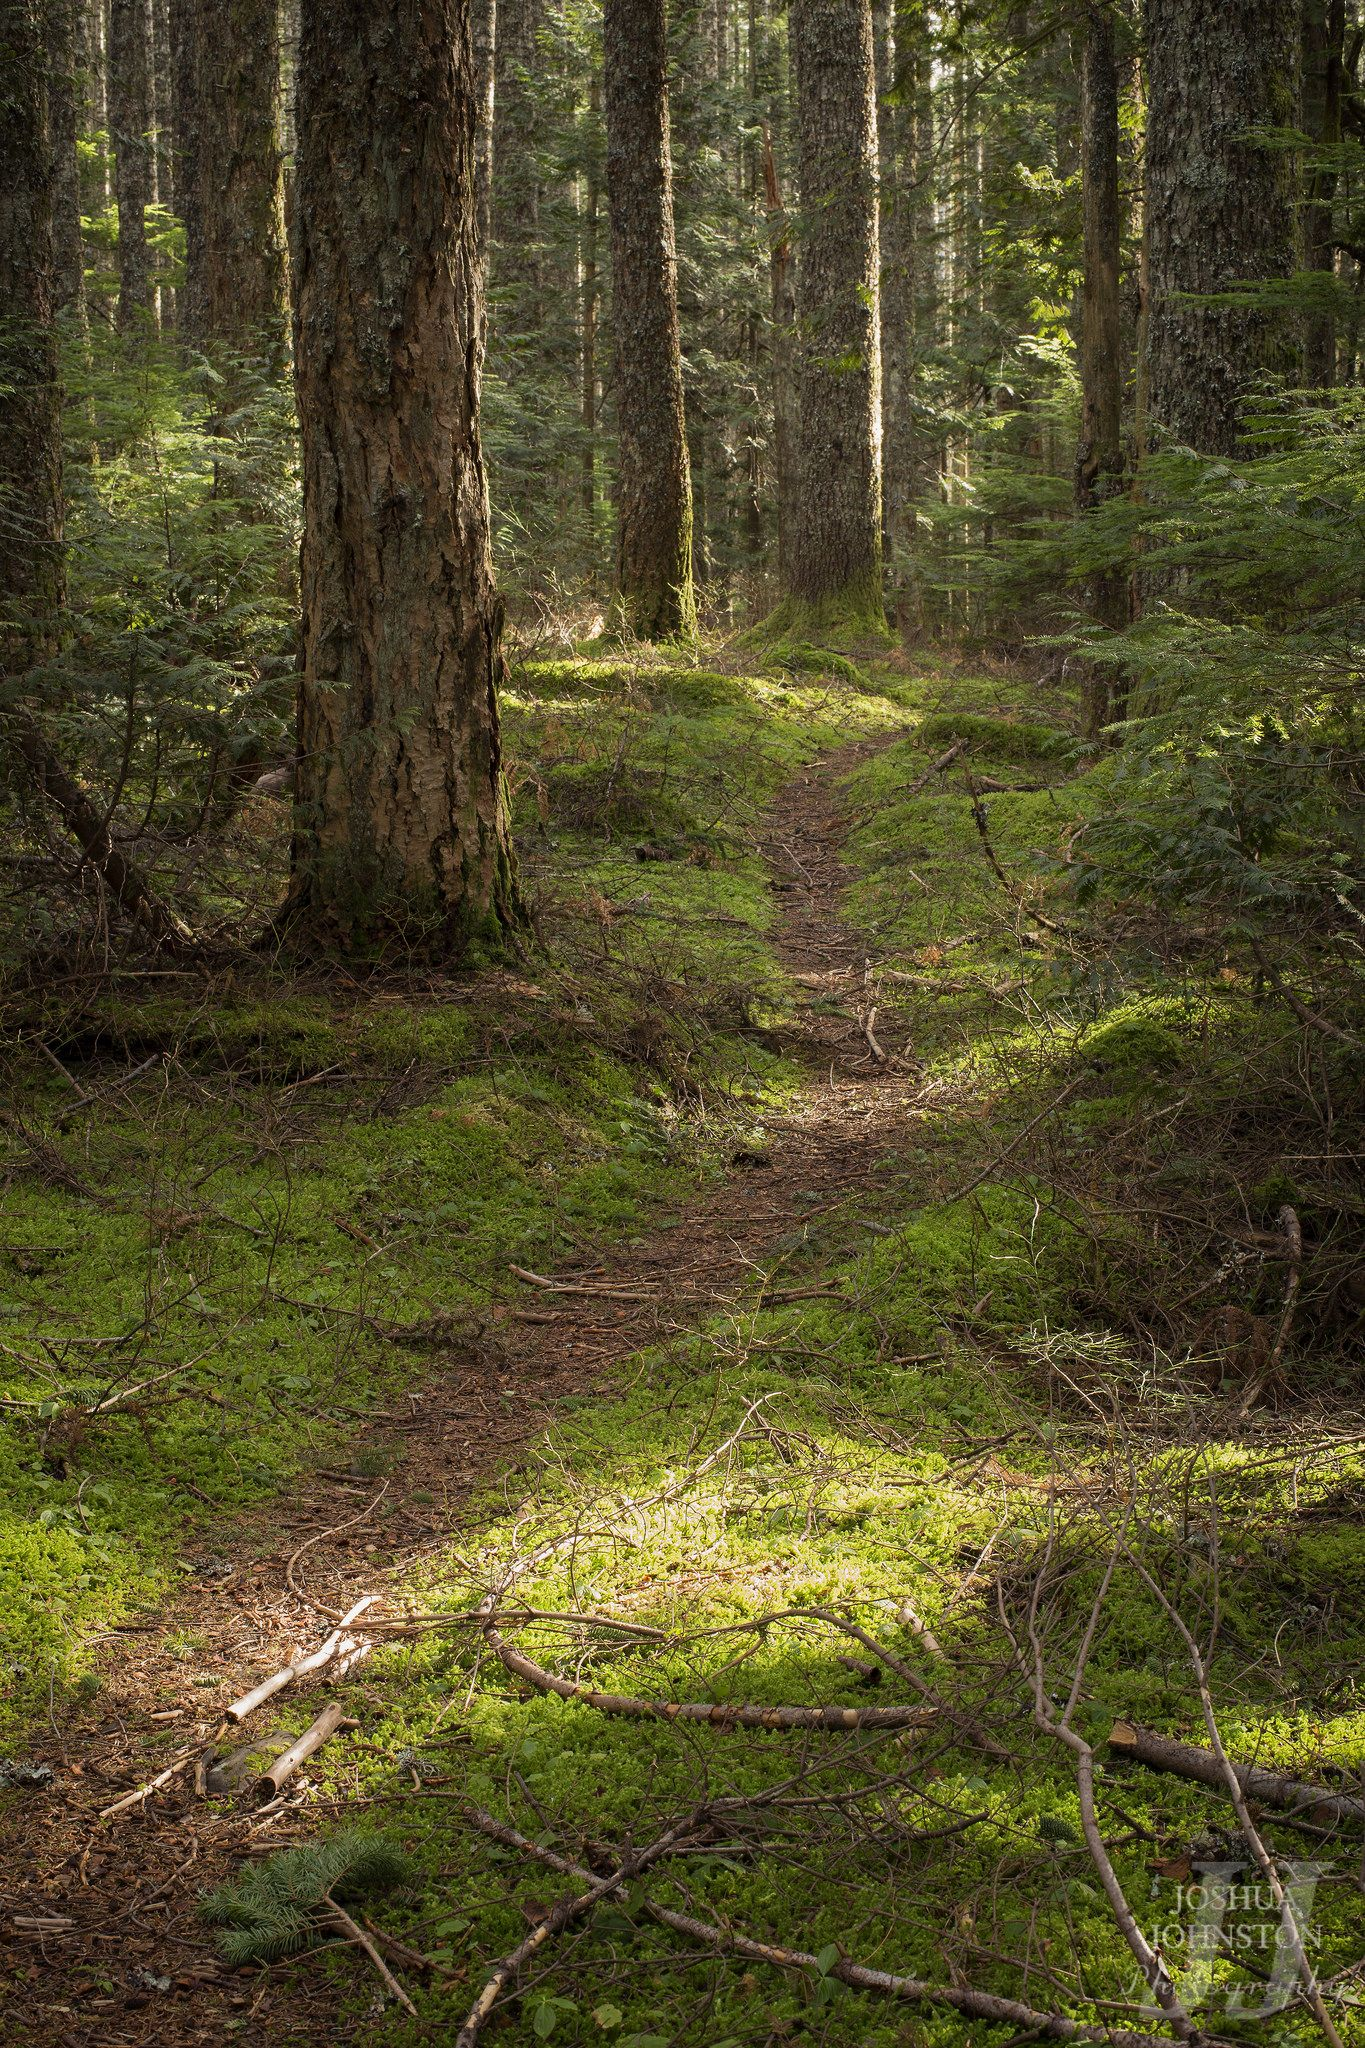 Unknown Path Tree Photography Nature Tree Nature Photography Nature path forest trees grass bushes